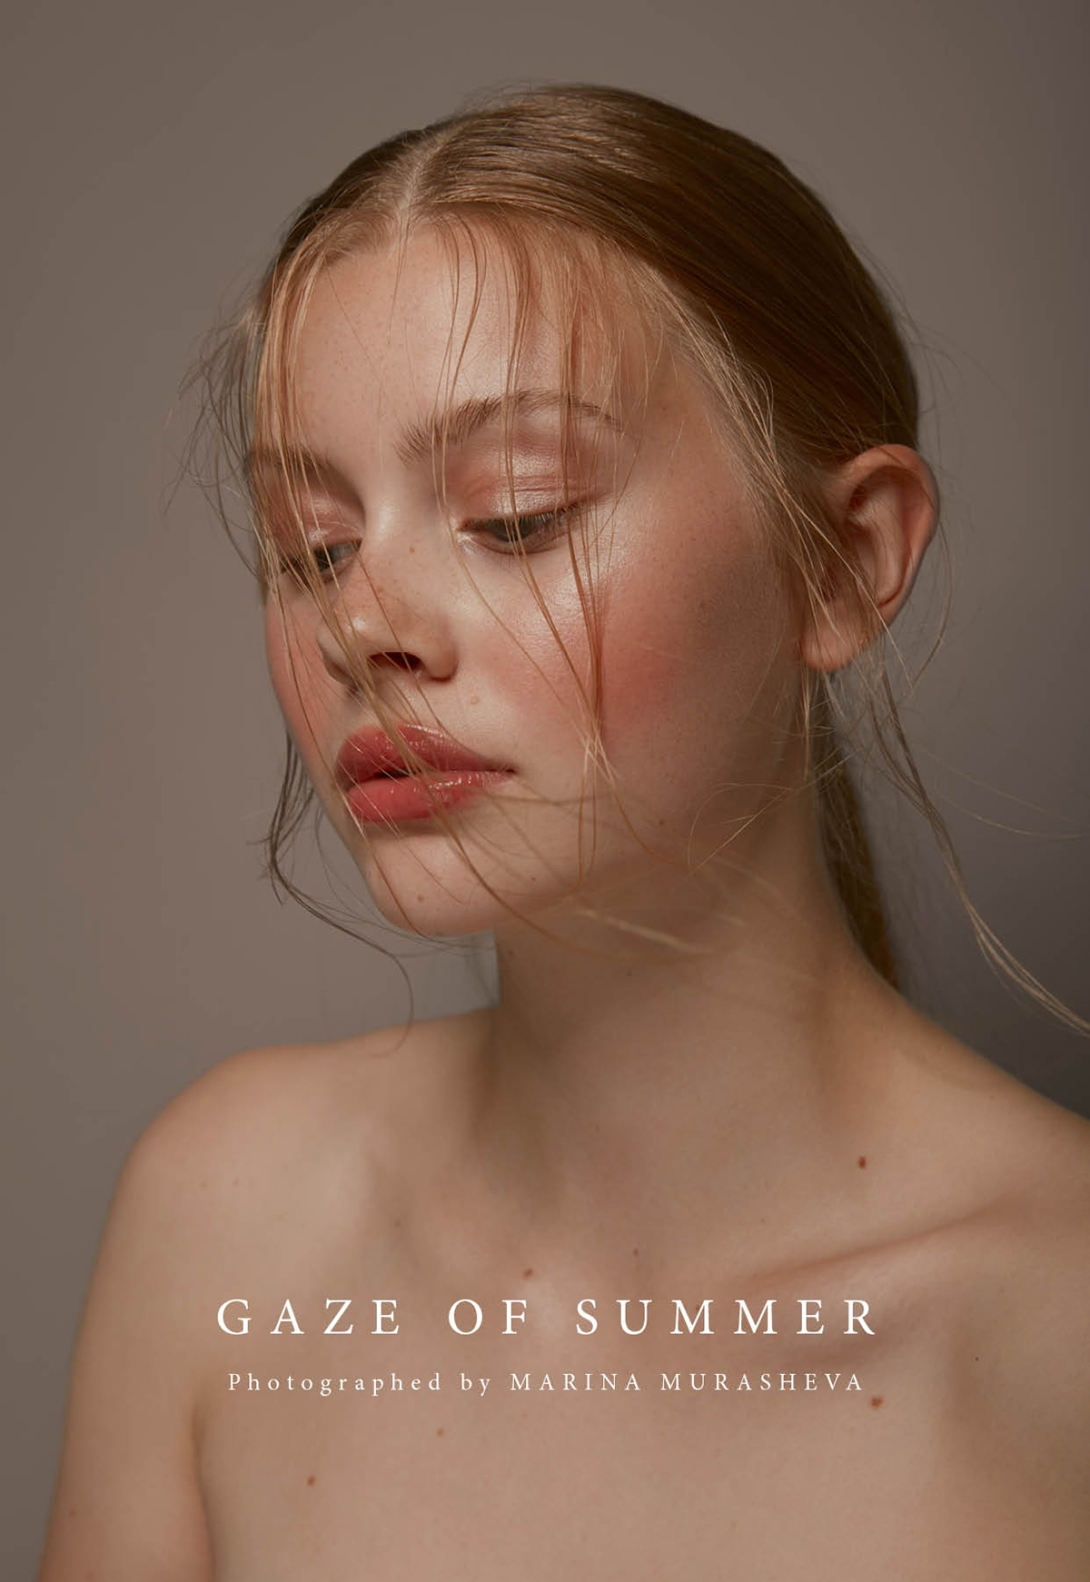 Gaze of Summer